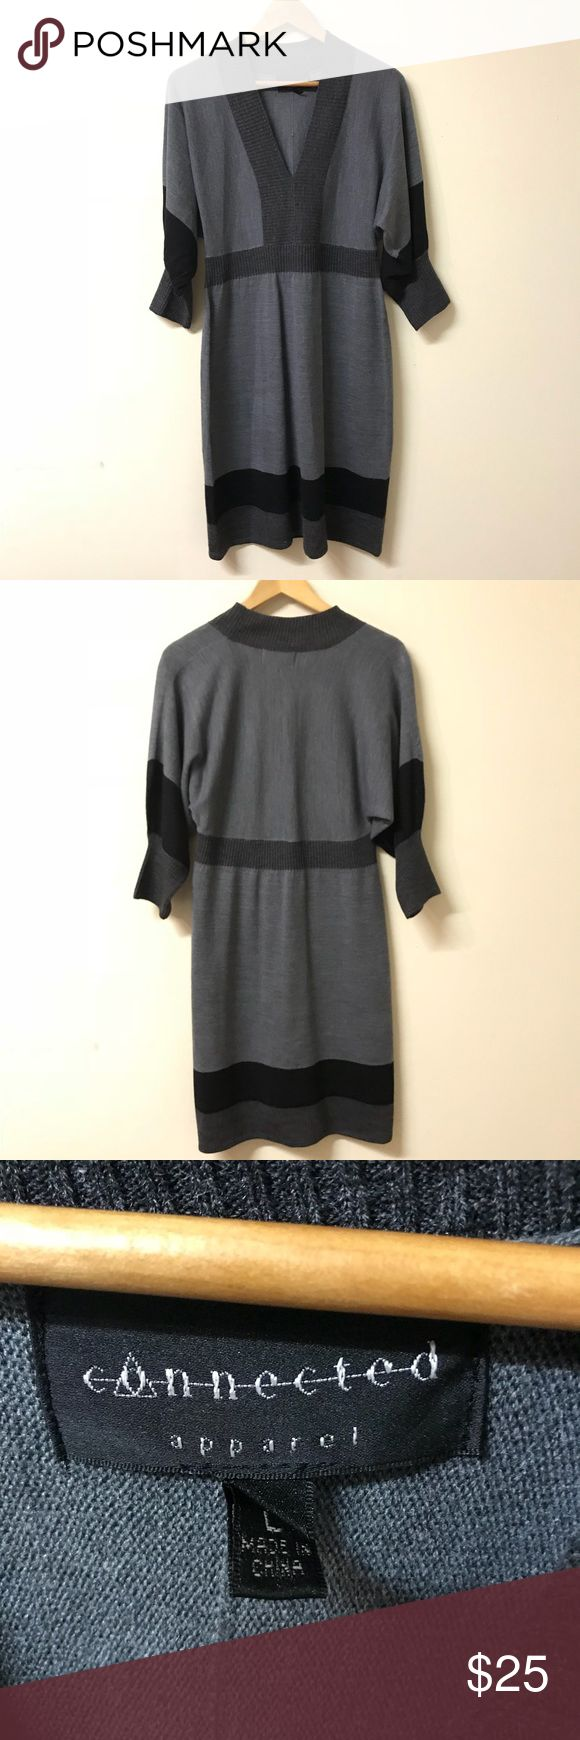 Gray & Black Sweater Dress Beautiful sweater dress by Connected Apparel. Size Large (measurements in last photo slot). New without tags! Connected Dresses